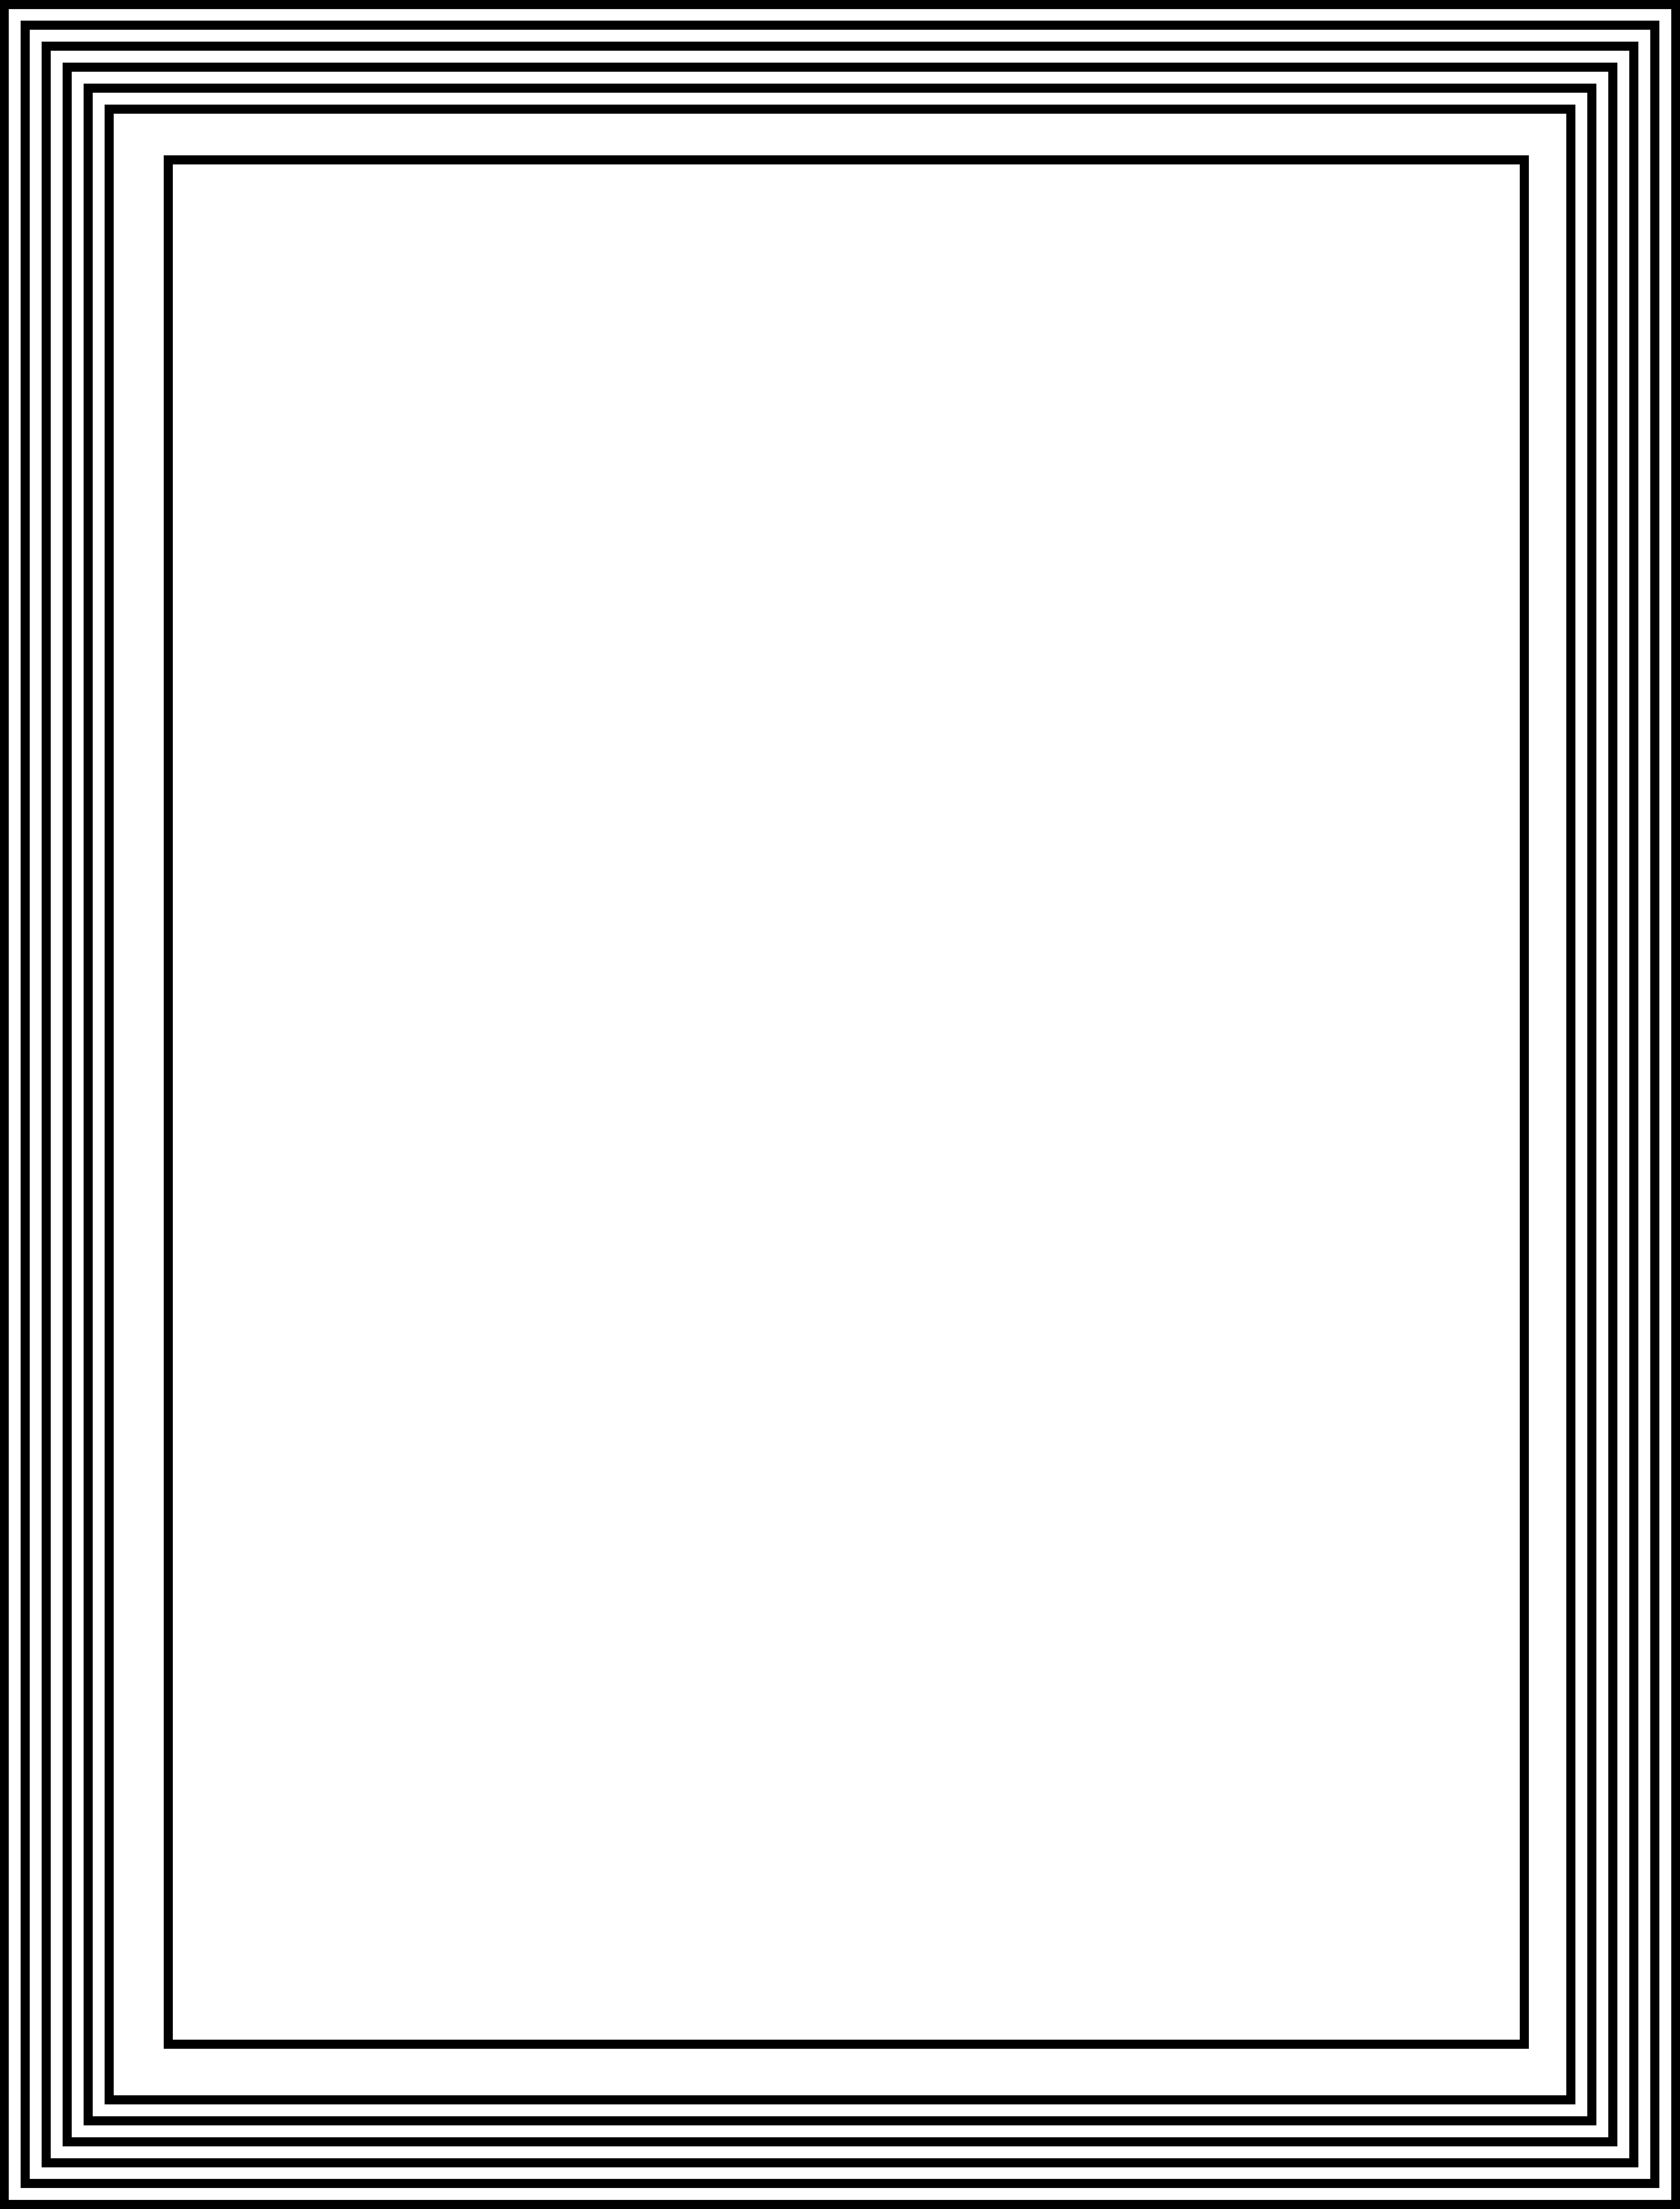 Ten Versatile Black And White Borders For Any Dtp Project